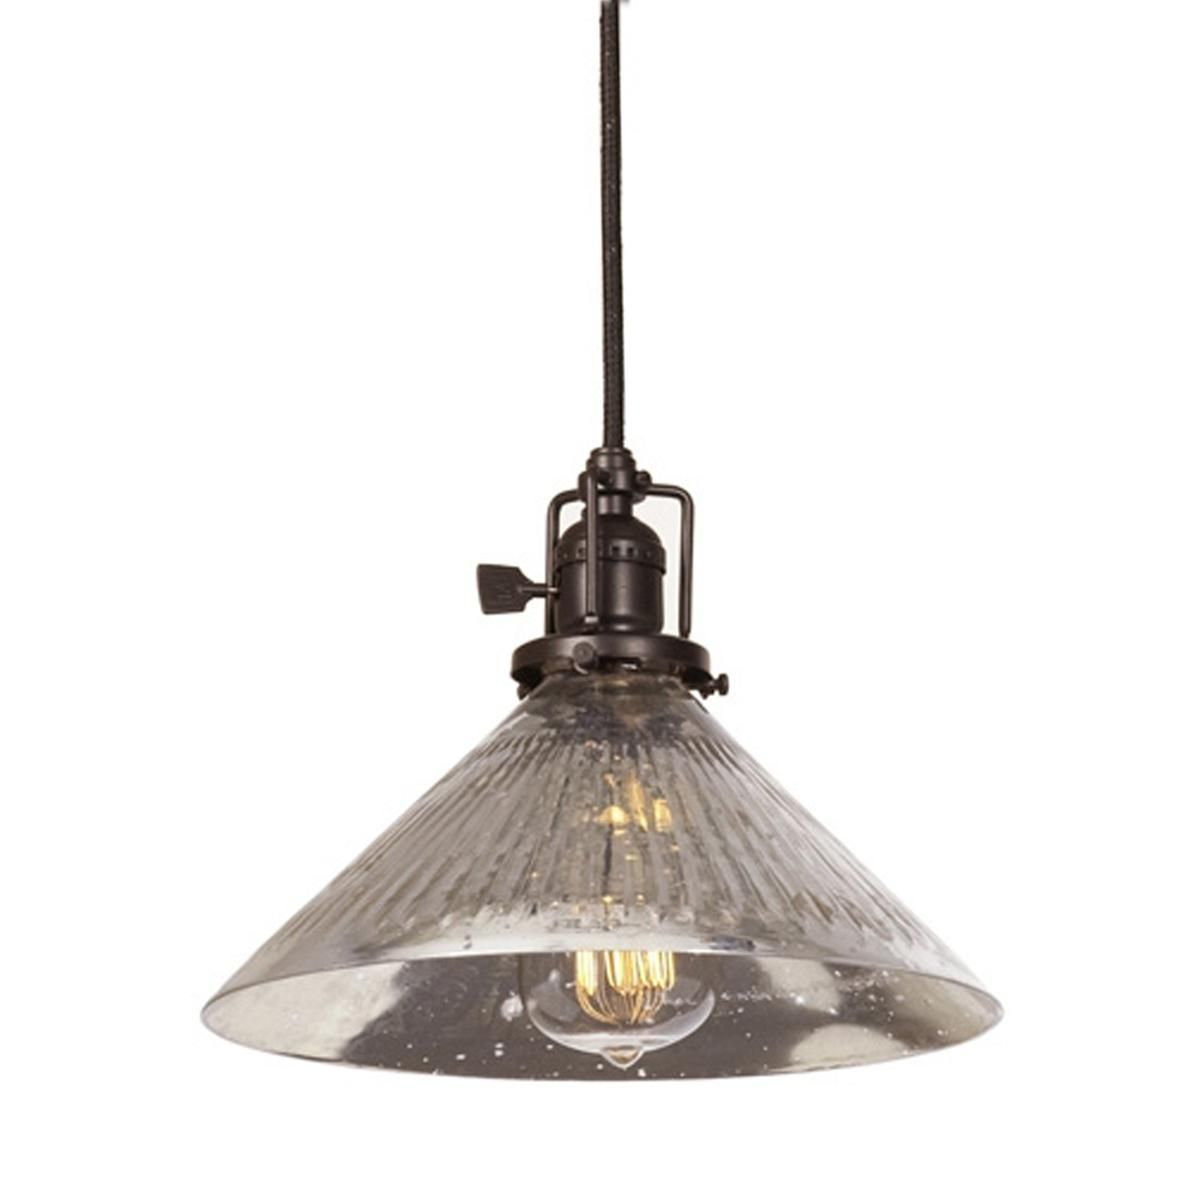 Kitchen Pendant Lighting Glass Shades Mercury Glass Cone Industrial Pendant Might Use Different